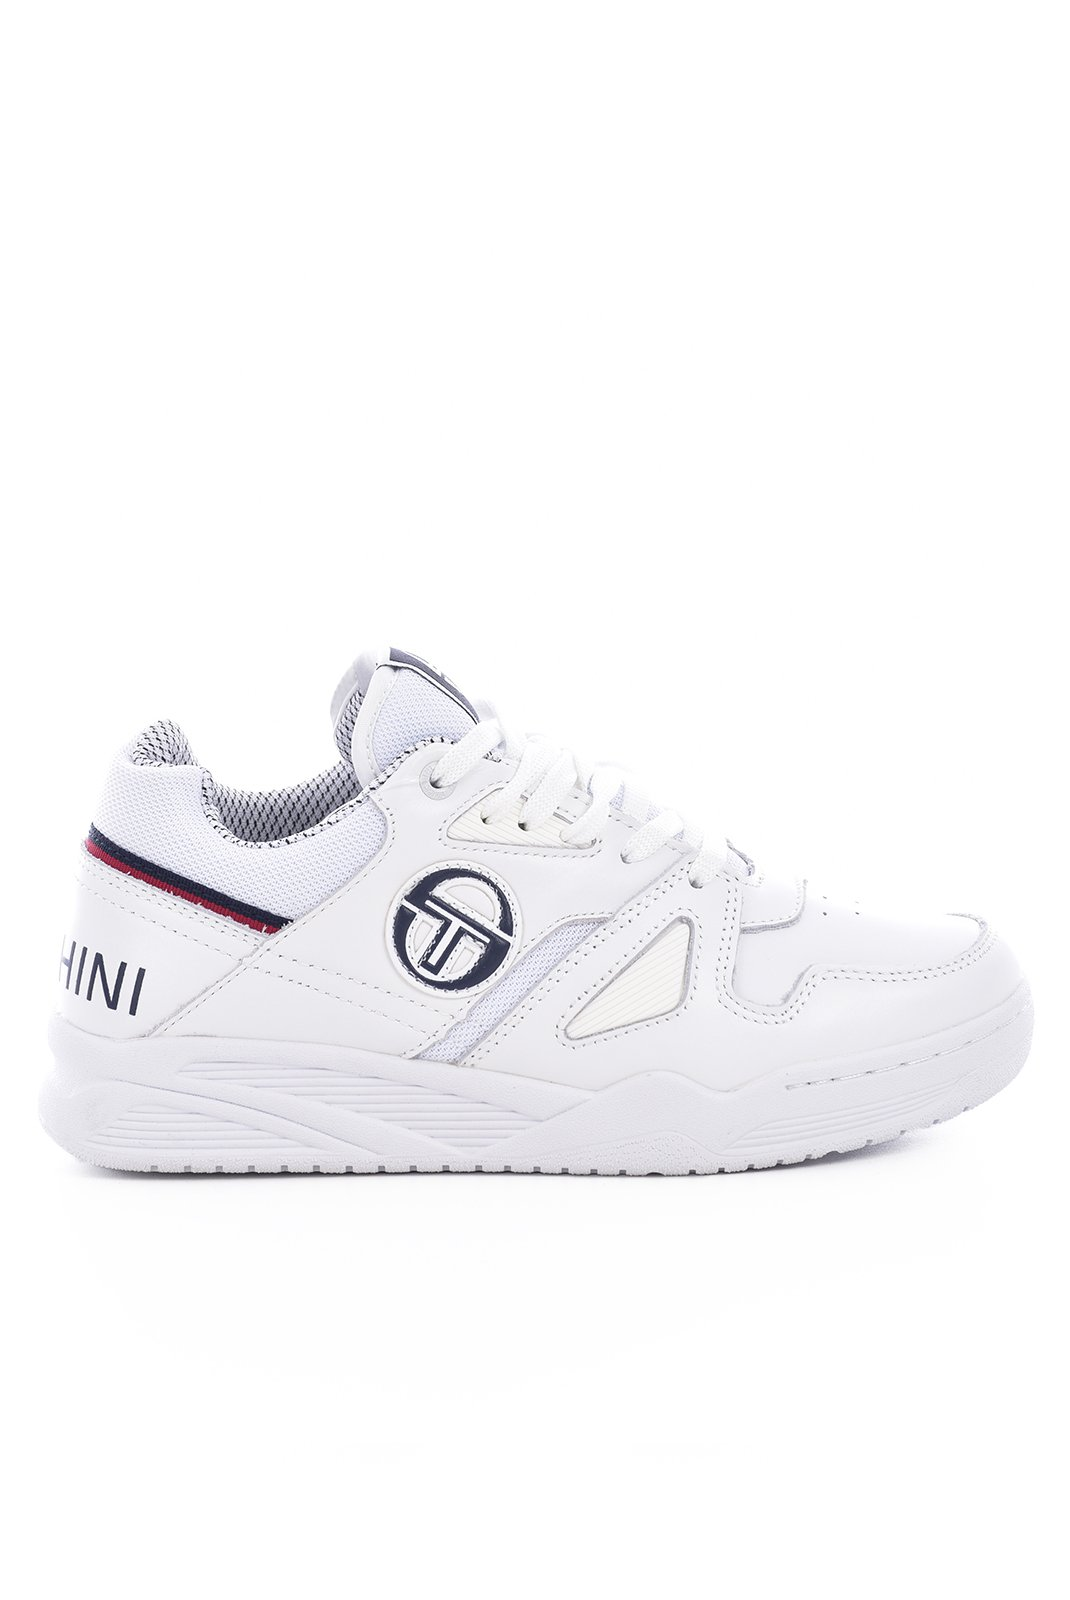 Baskets / Sneakers  Sergio tacchini STW912015 04 WHITE